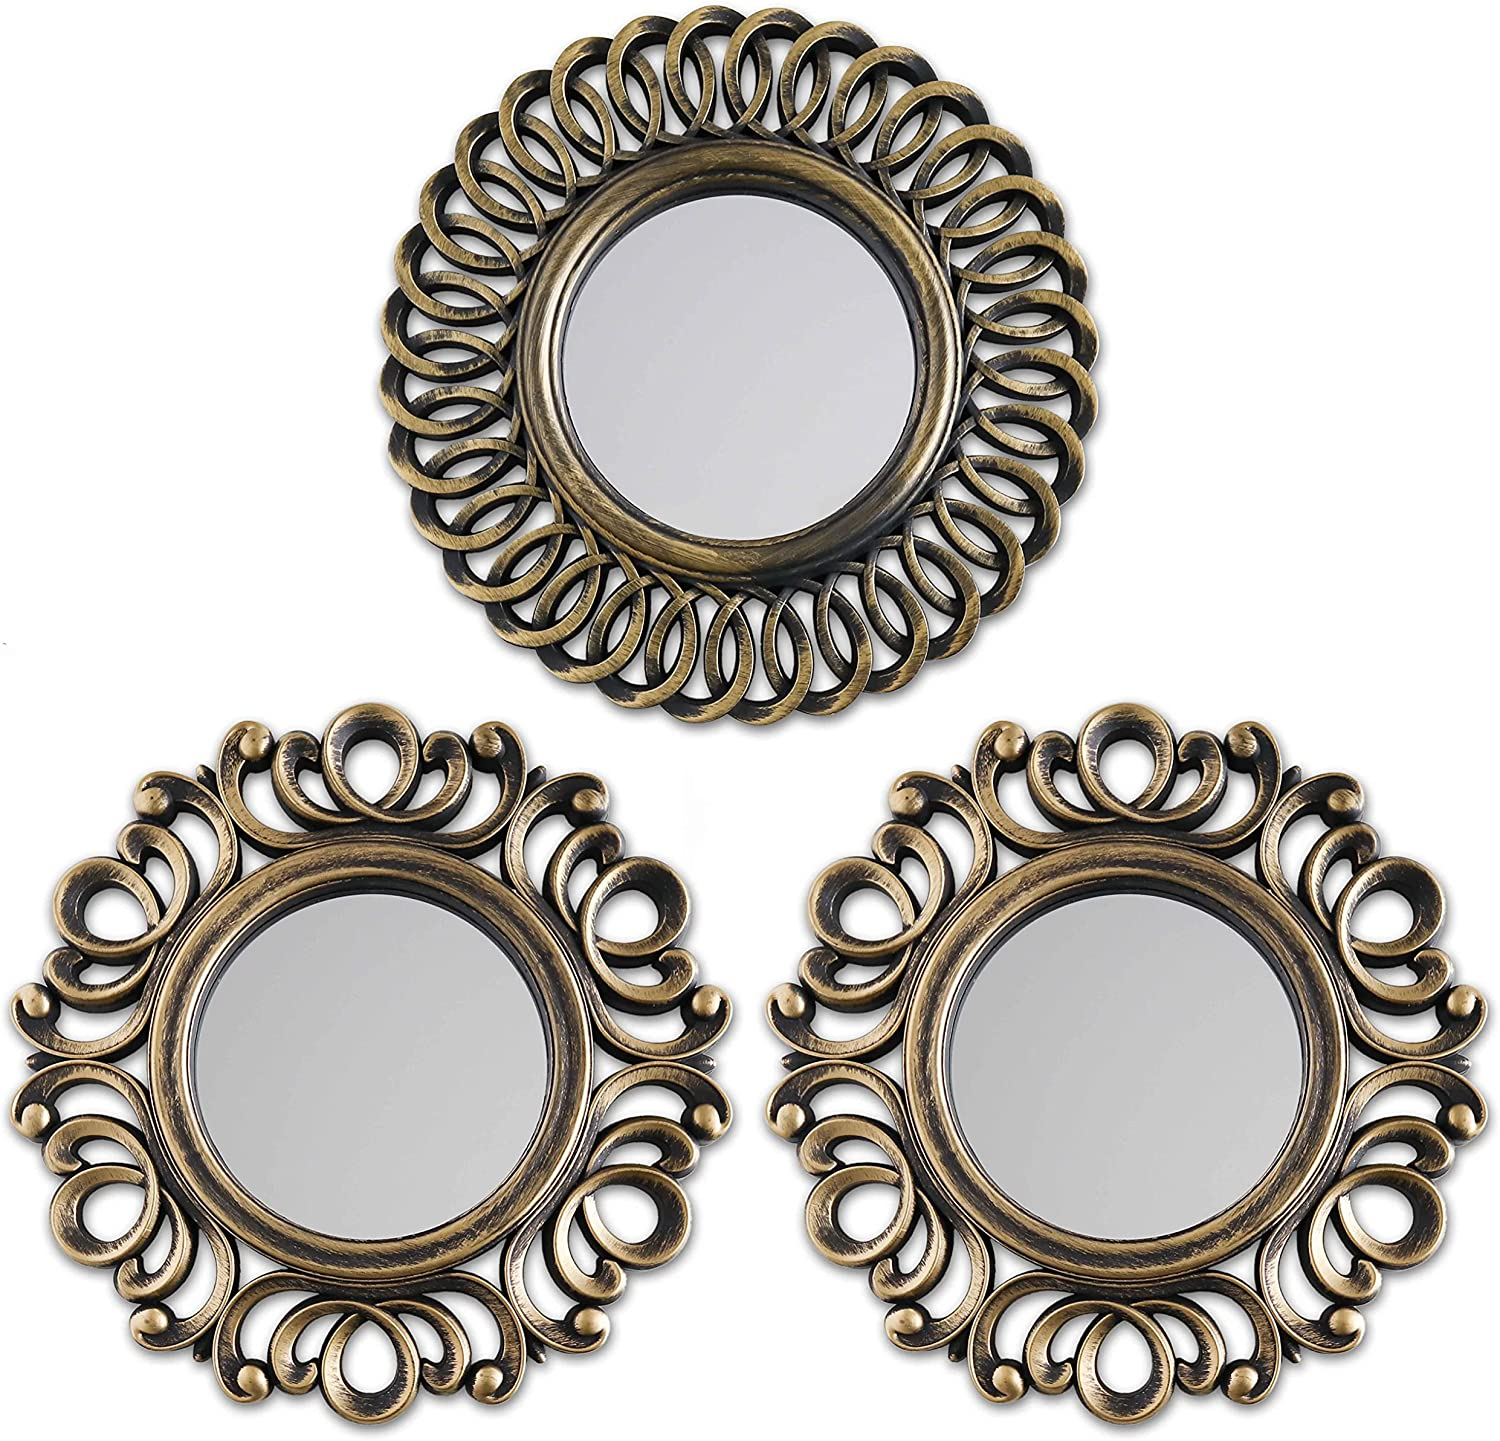 Wall Mirrors Pack of 3 - BONNYCO | Gold Vintage Mirrors for Living Room, Home Decor & Bedroom | Round Mirrors for Hanging and Wall Decor | Small Mirrors & Home Accessories | Gifts for Women & Mums…